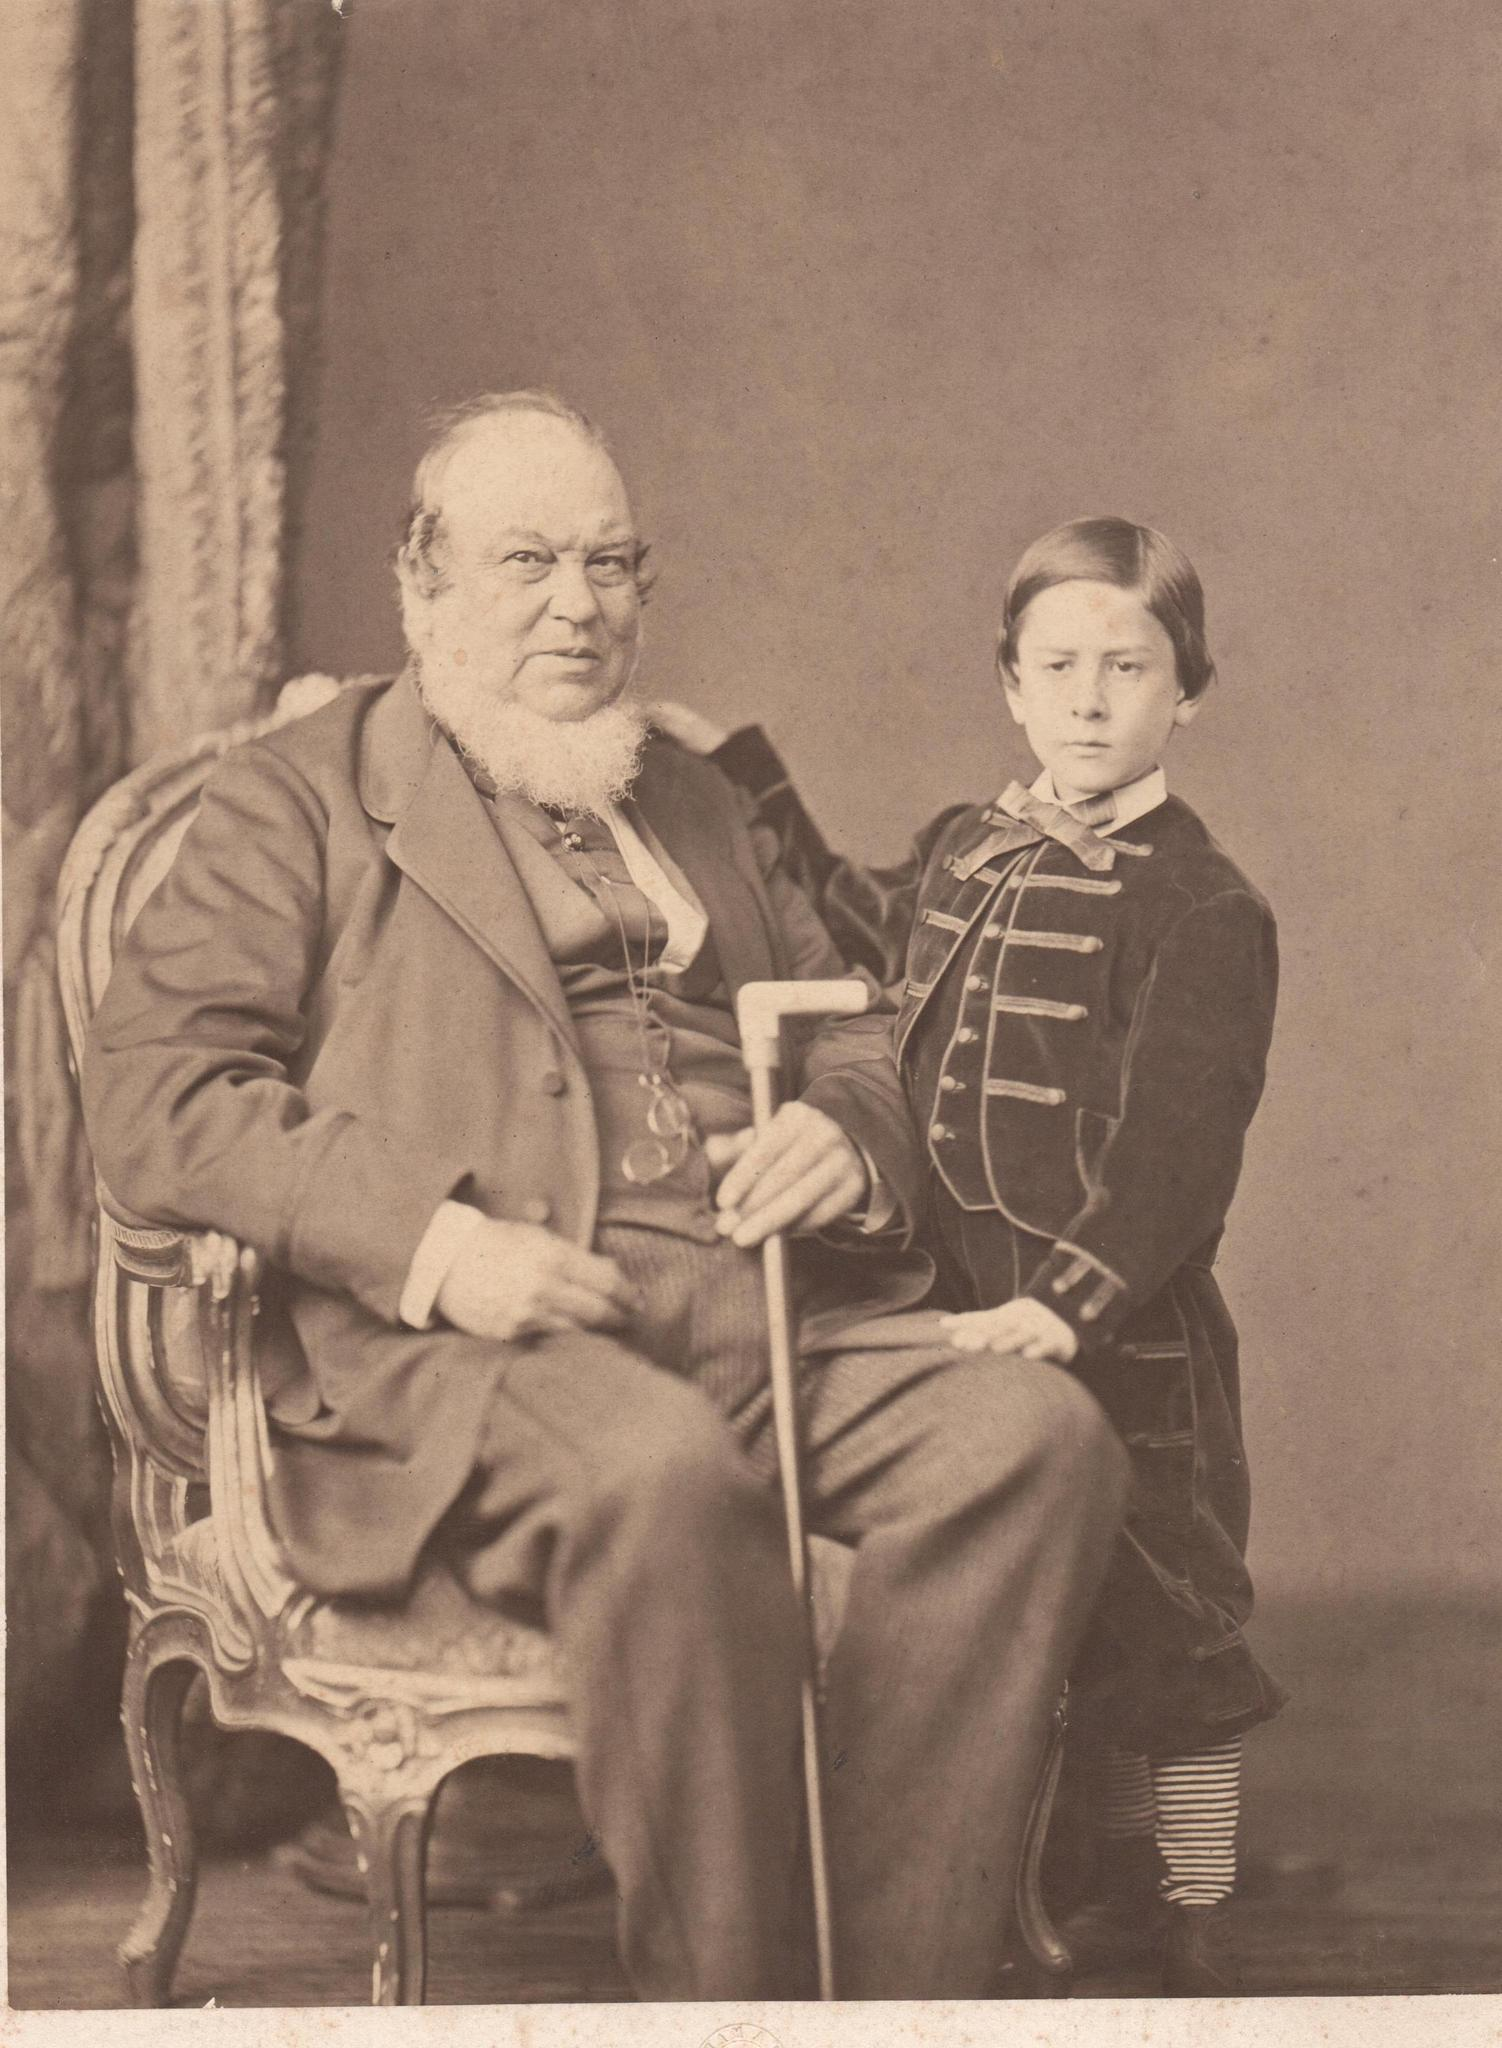 Benjamin Fitch and his grand-nephew, Augustus B. Fitch, circa 1860. On July 4, 1864, some 3,000 people gathered for formal dedication of Fitch's Home for the Soldiers and Their Orphans in Noroton Heights in Darien. The home would later move to Rocky Hill and become the state Veterans Home and Hospital.